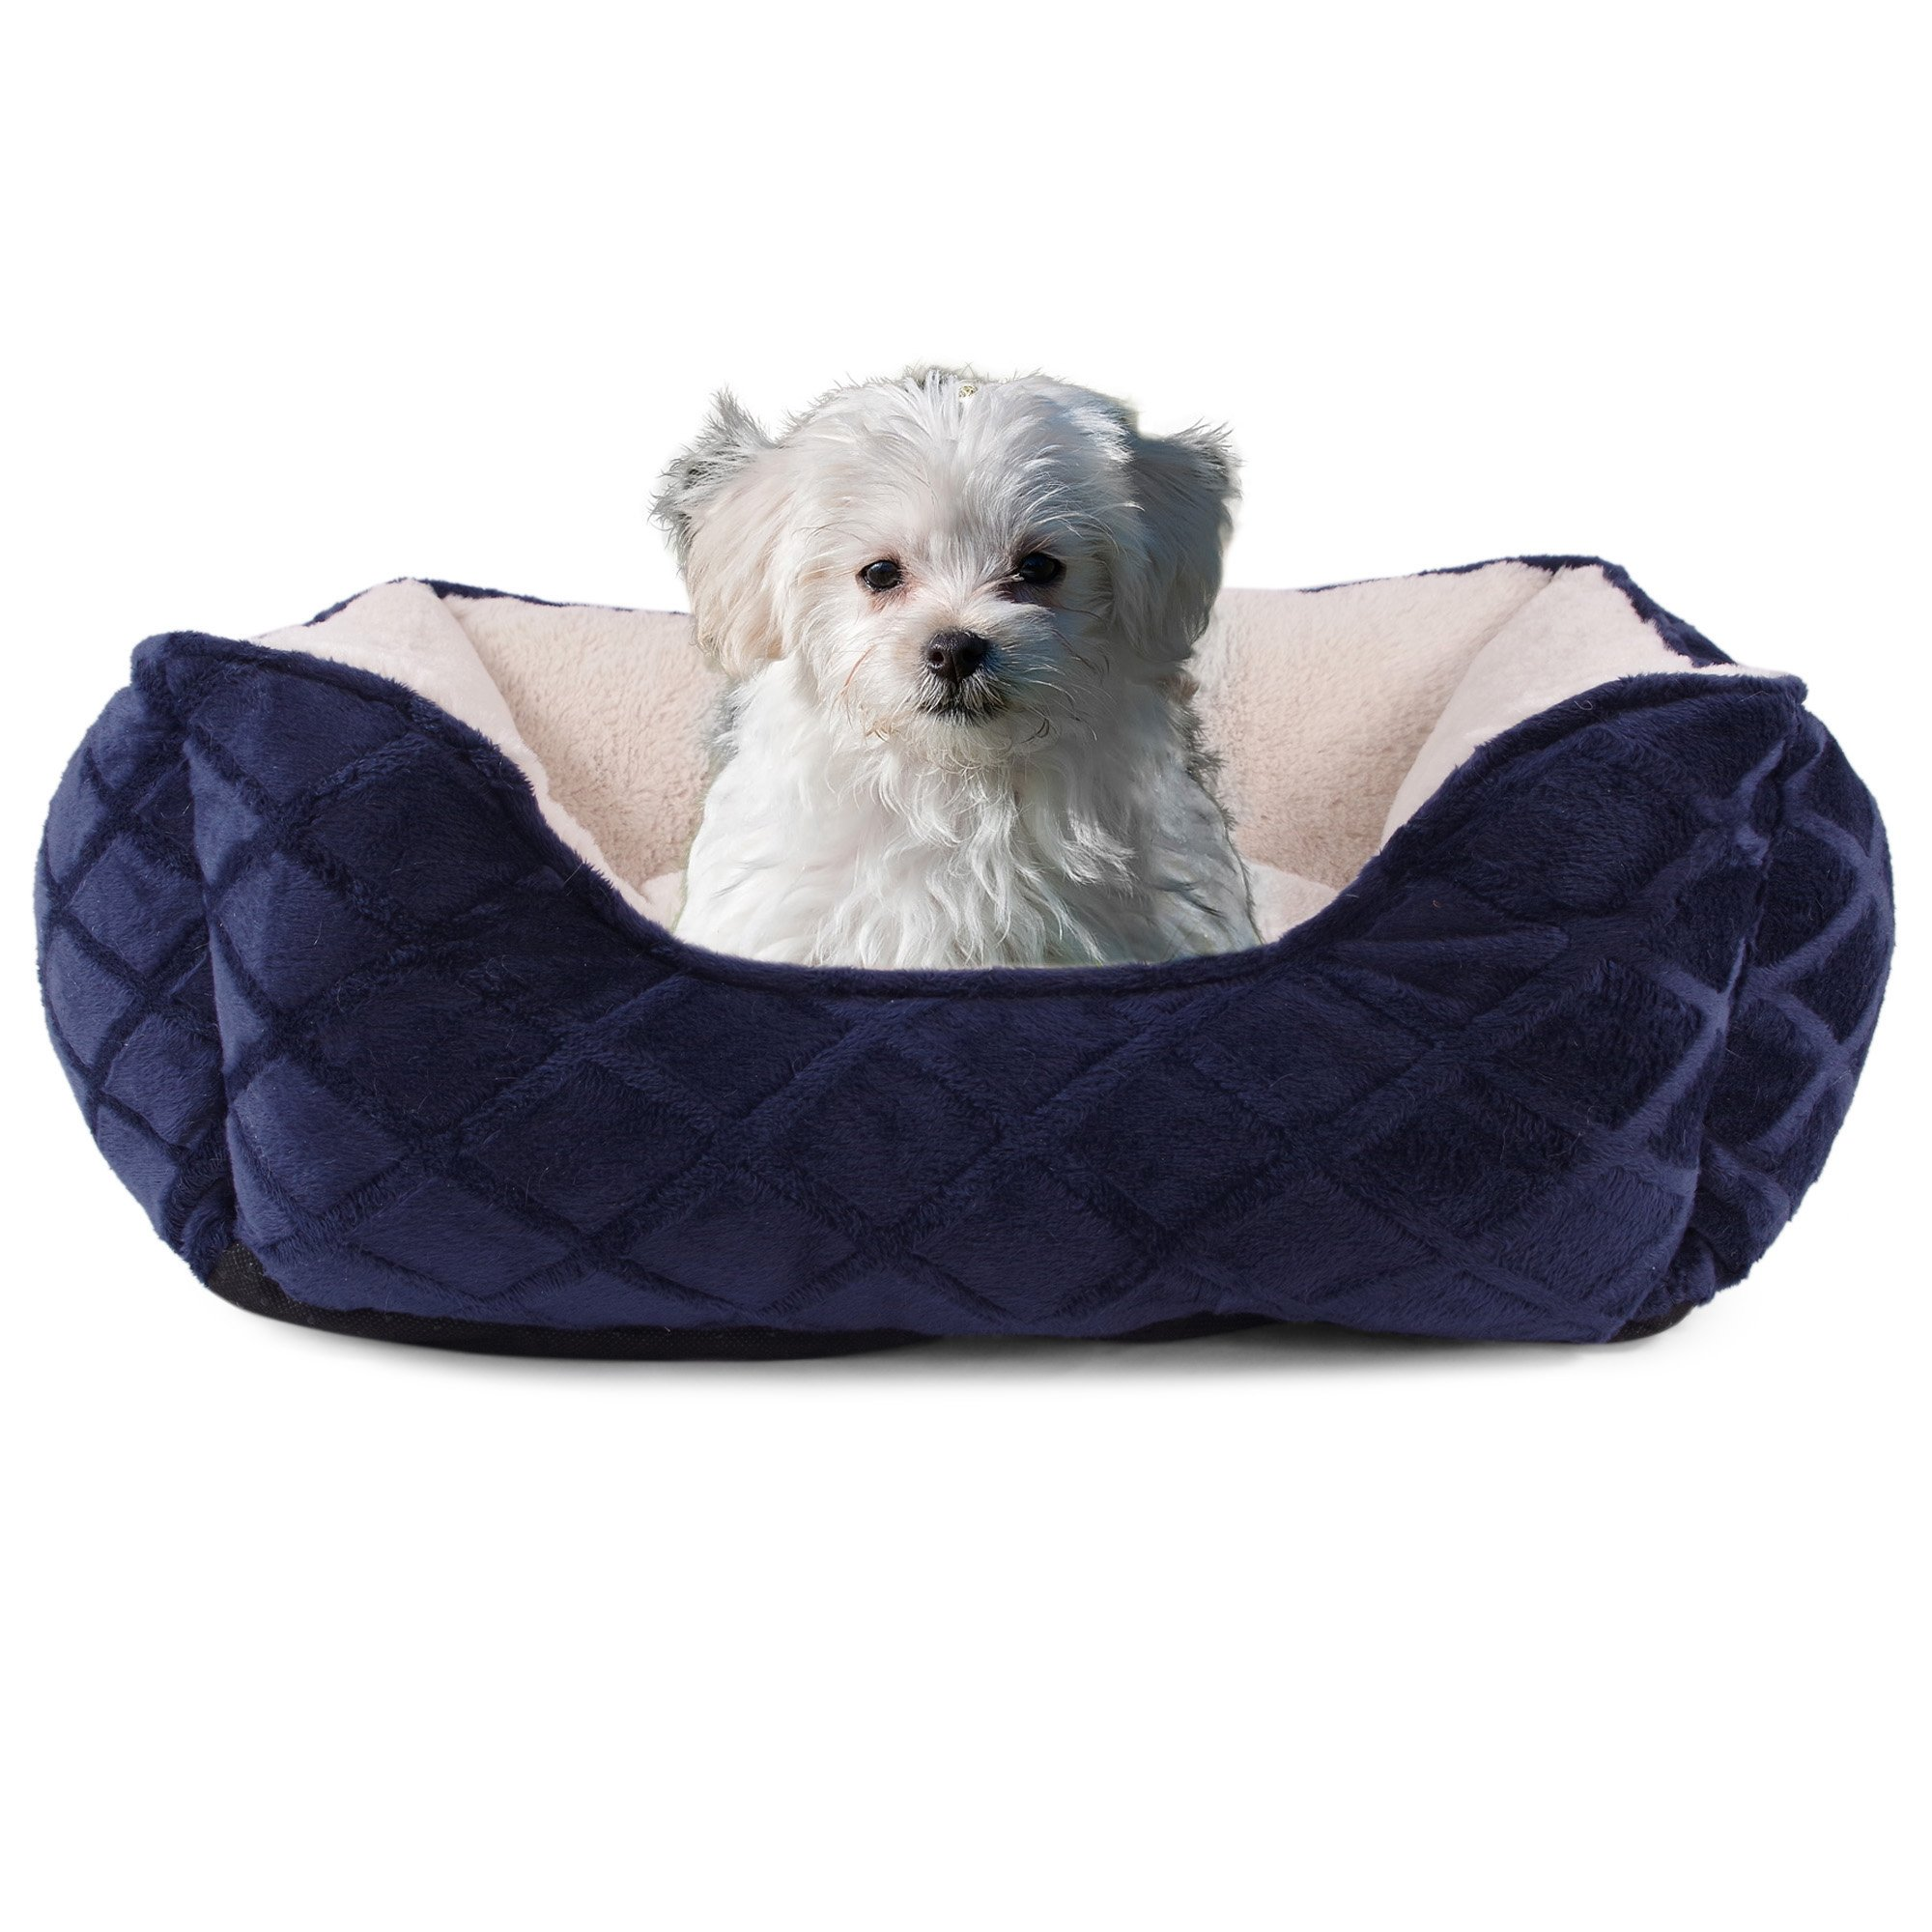 Cozy Cuddlerz C-03BL NAVY Diamond Deluxe Pet Bed, 28'' x 23'' x 8'', Navy